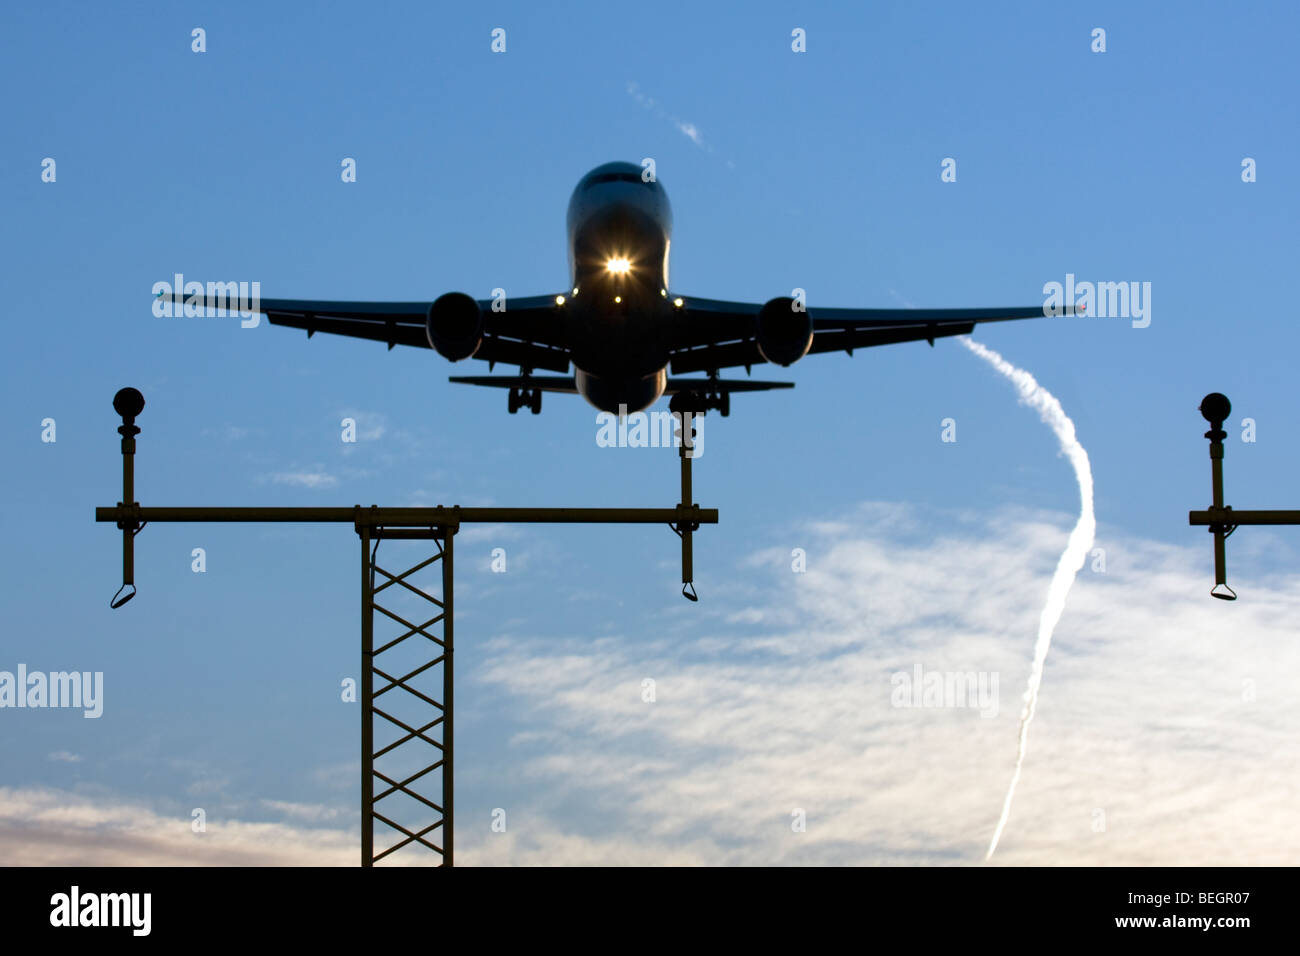 Commercial airliner on approach London Heathrow Airport UK - Stock Image